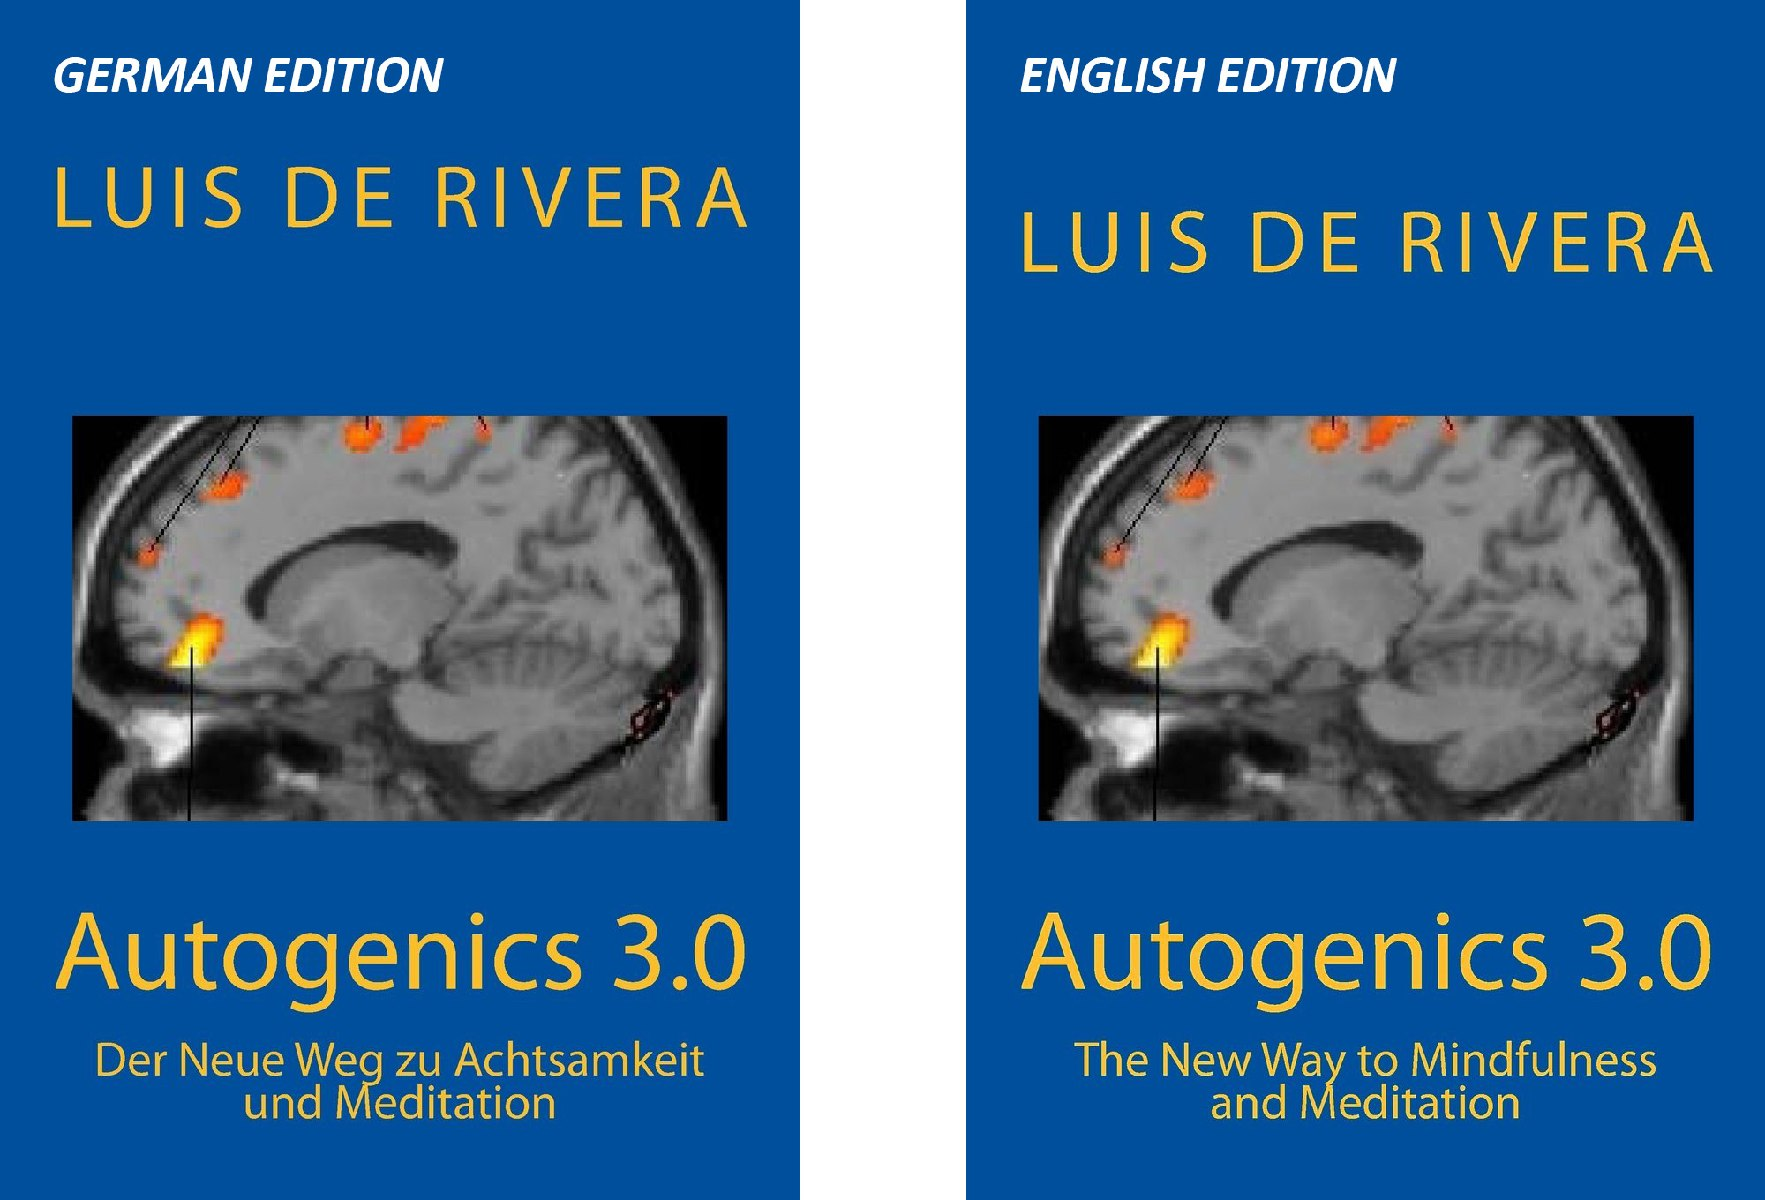 Autogenics 3.0 by Dr Luis de Rivera